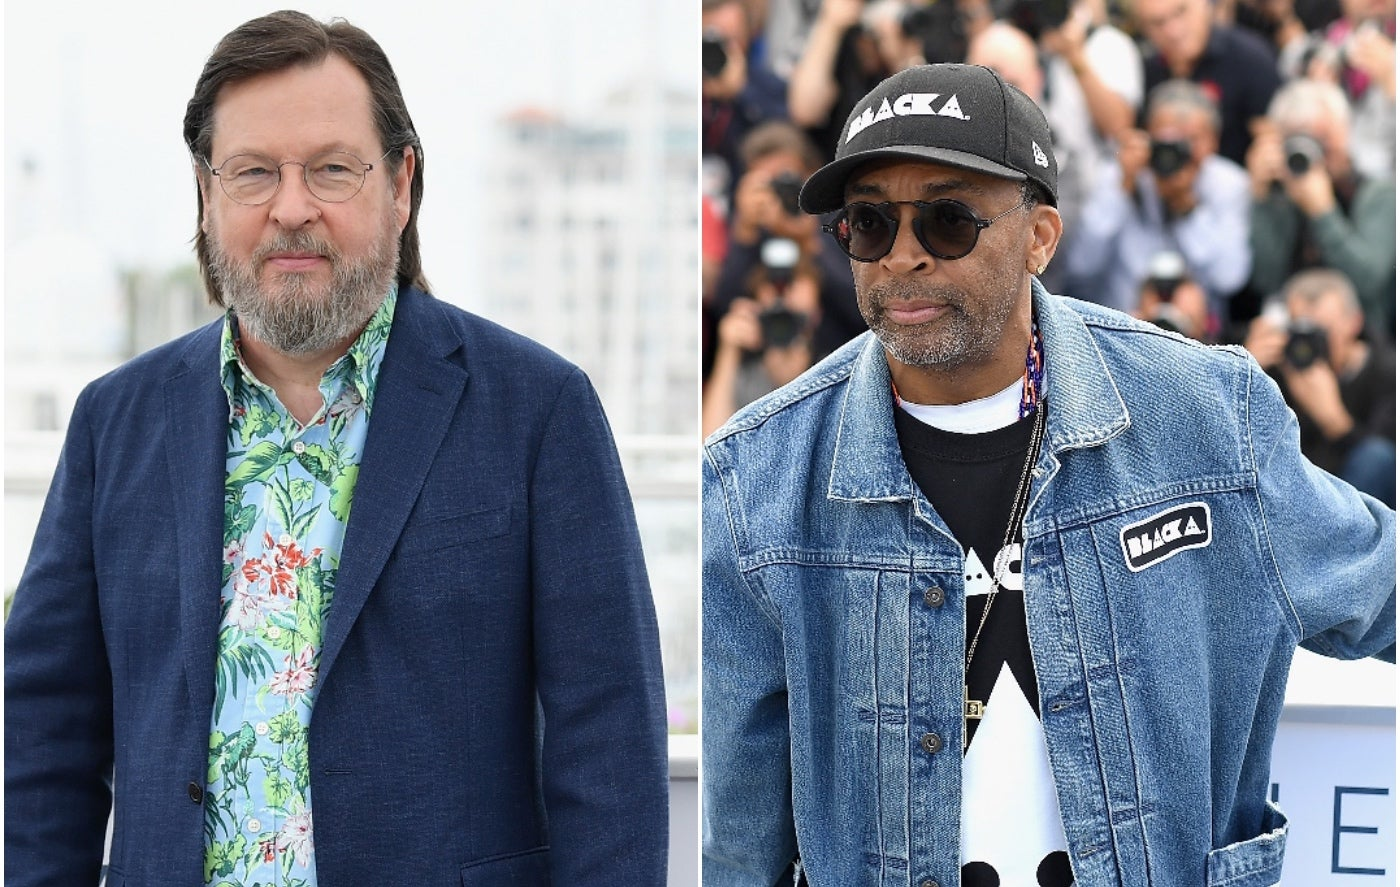 Filmmakers Spike Lee and Lars Von Trier